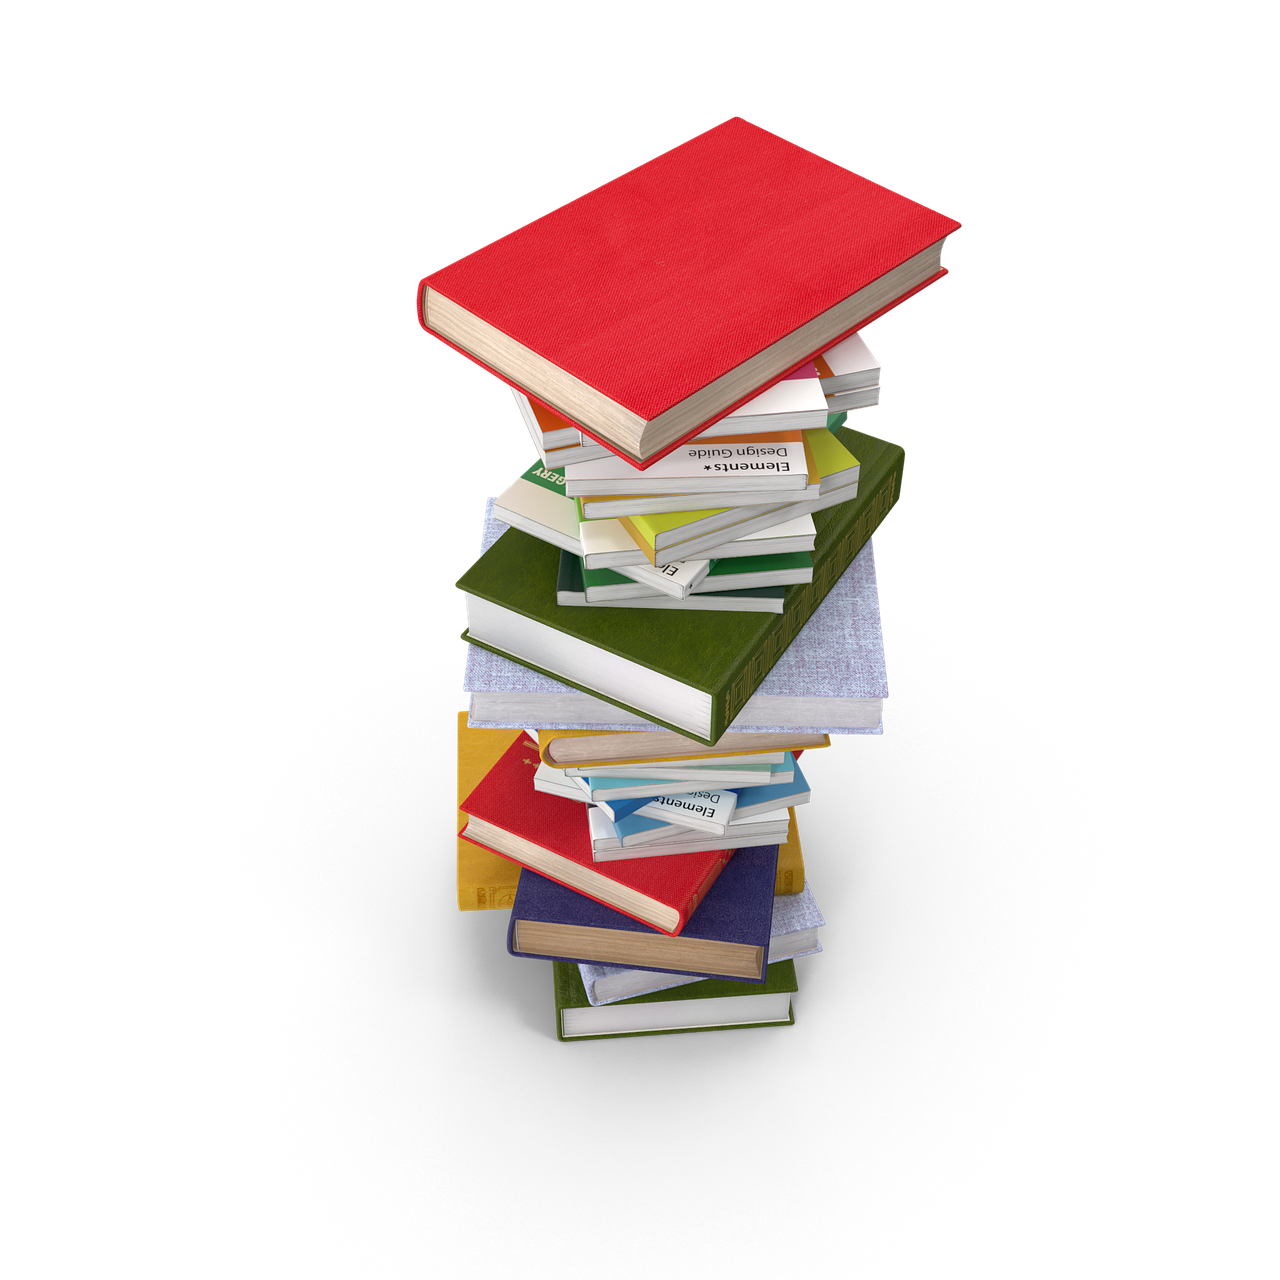 books-3178816_1280.png